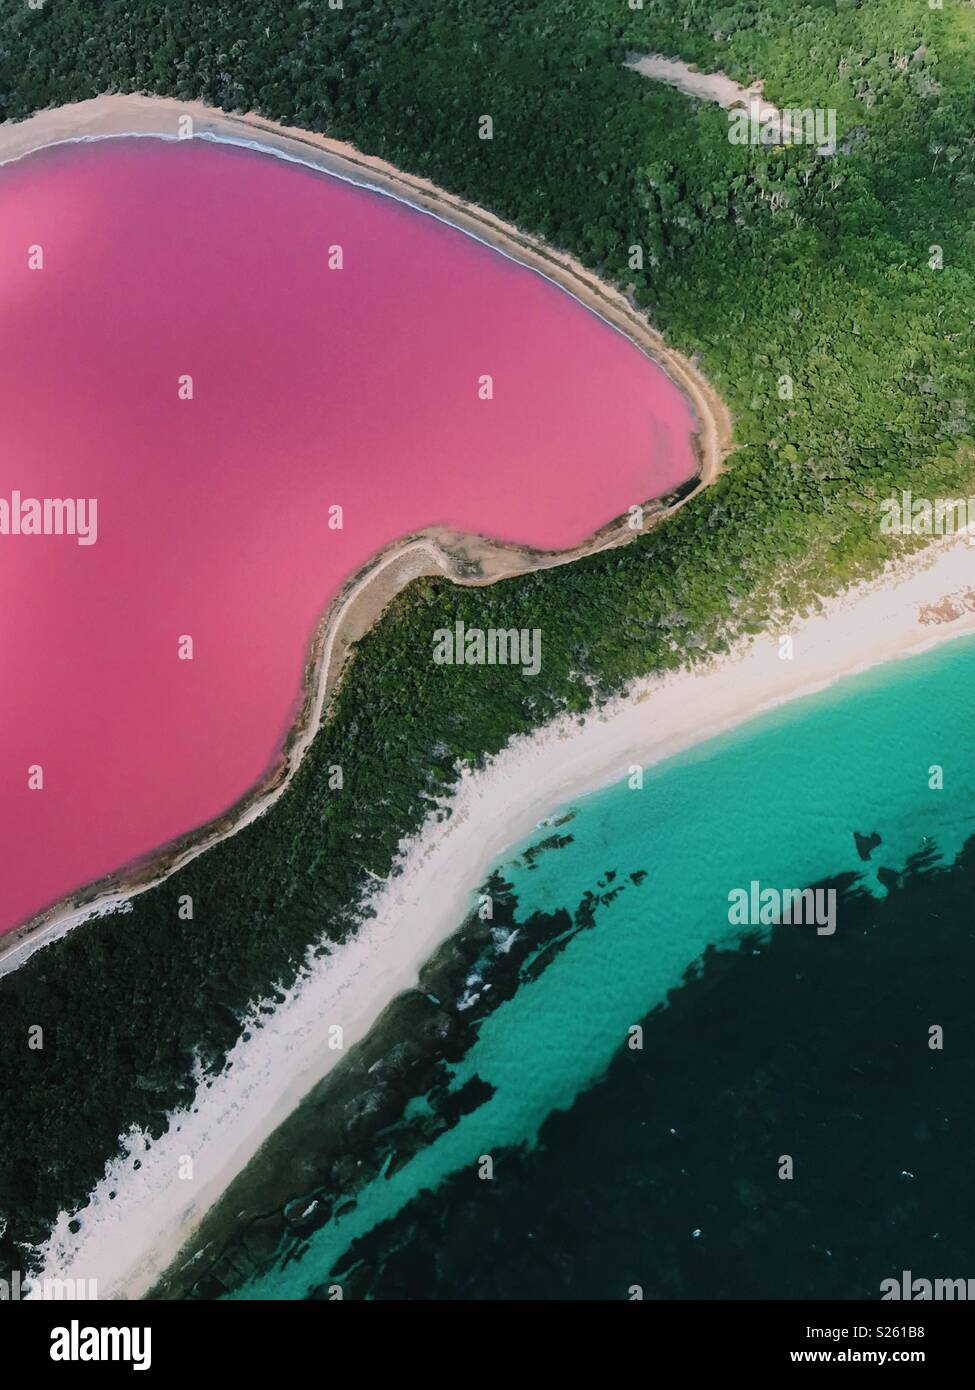 Pink lake at Esperance - Stock Image